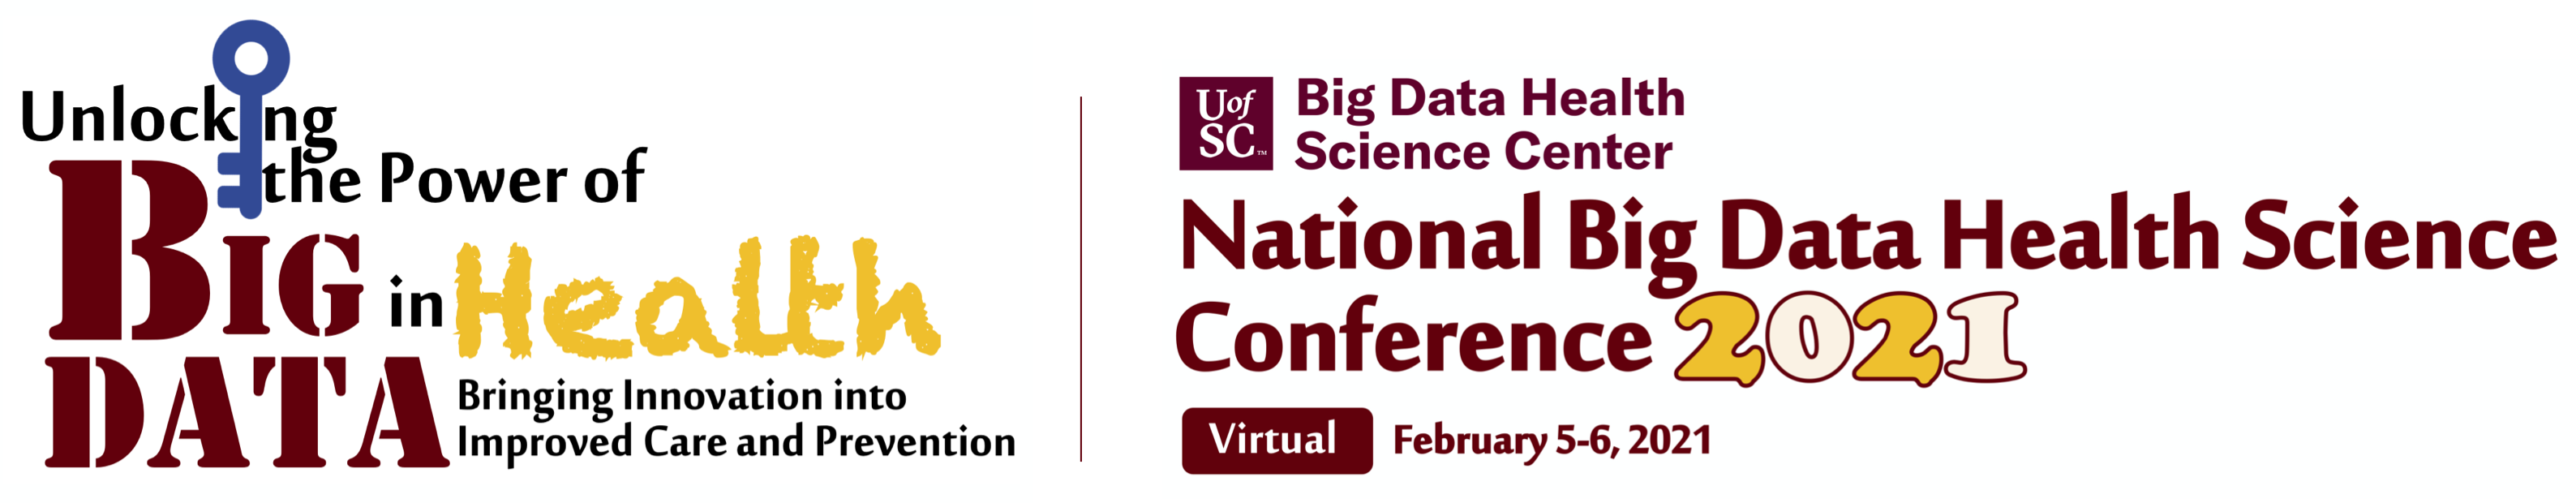 SC Big Data Health Science Center Conference 2021